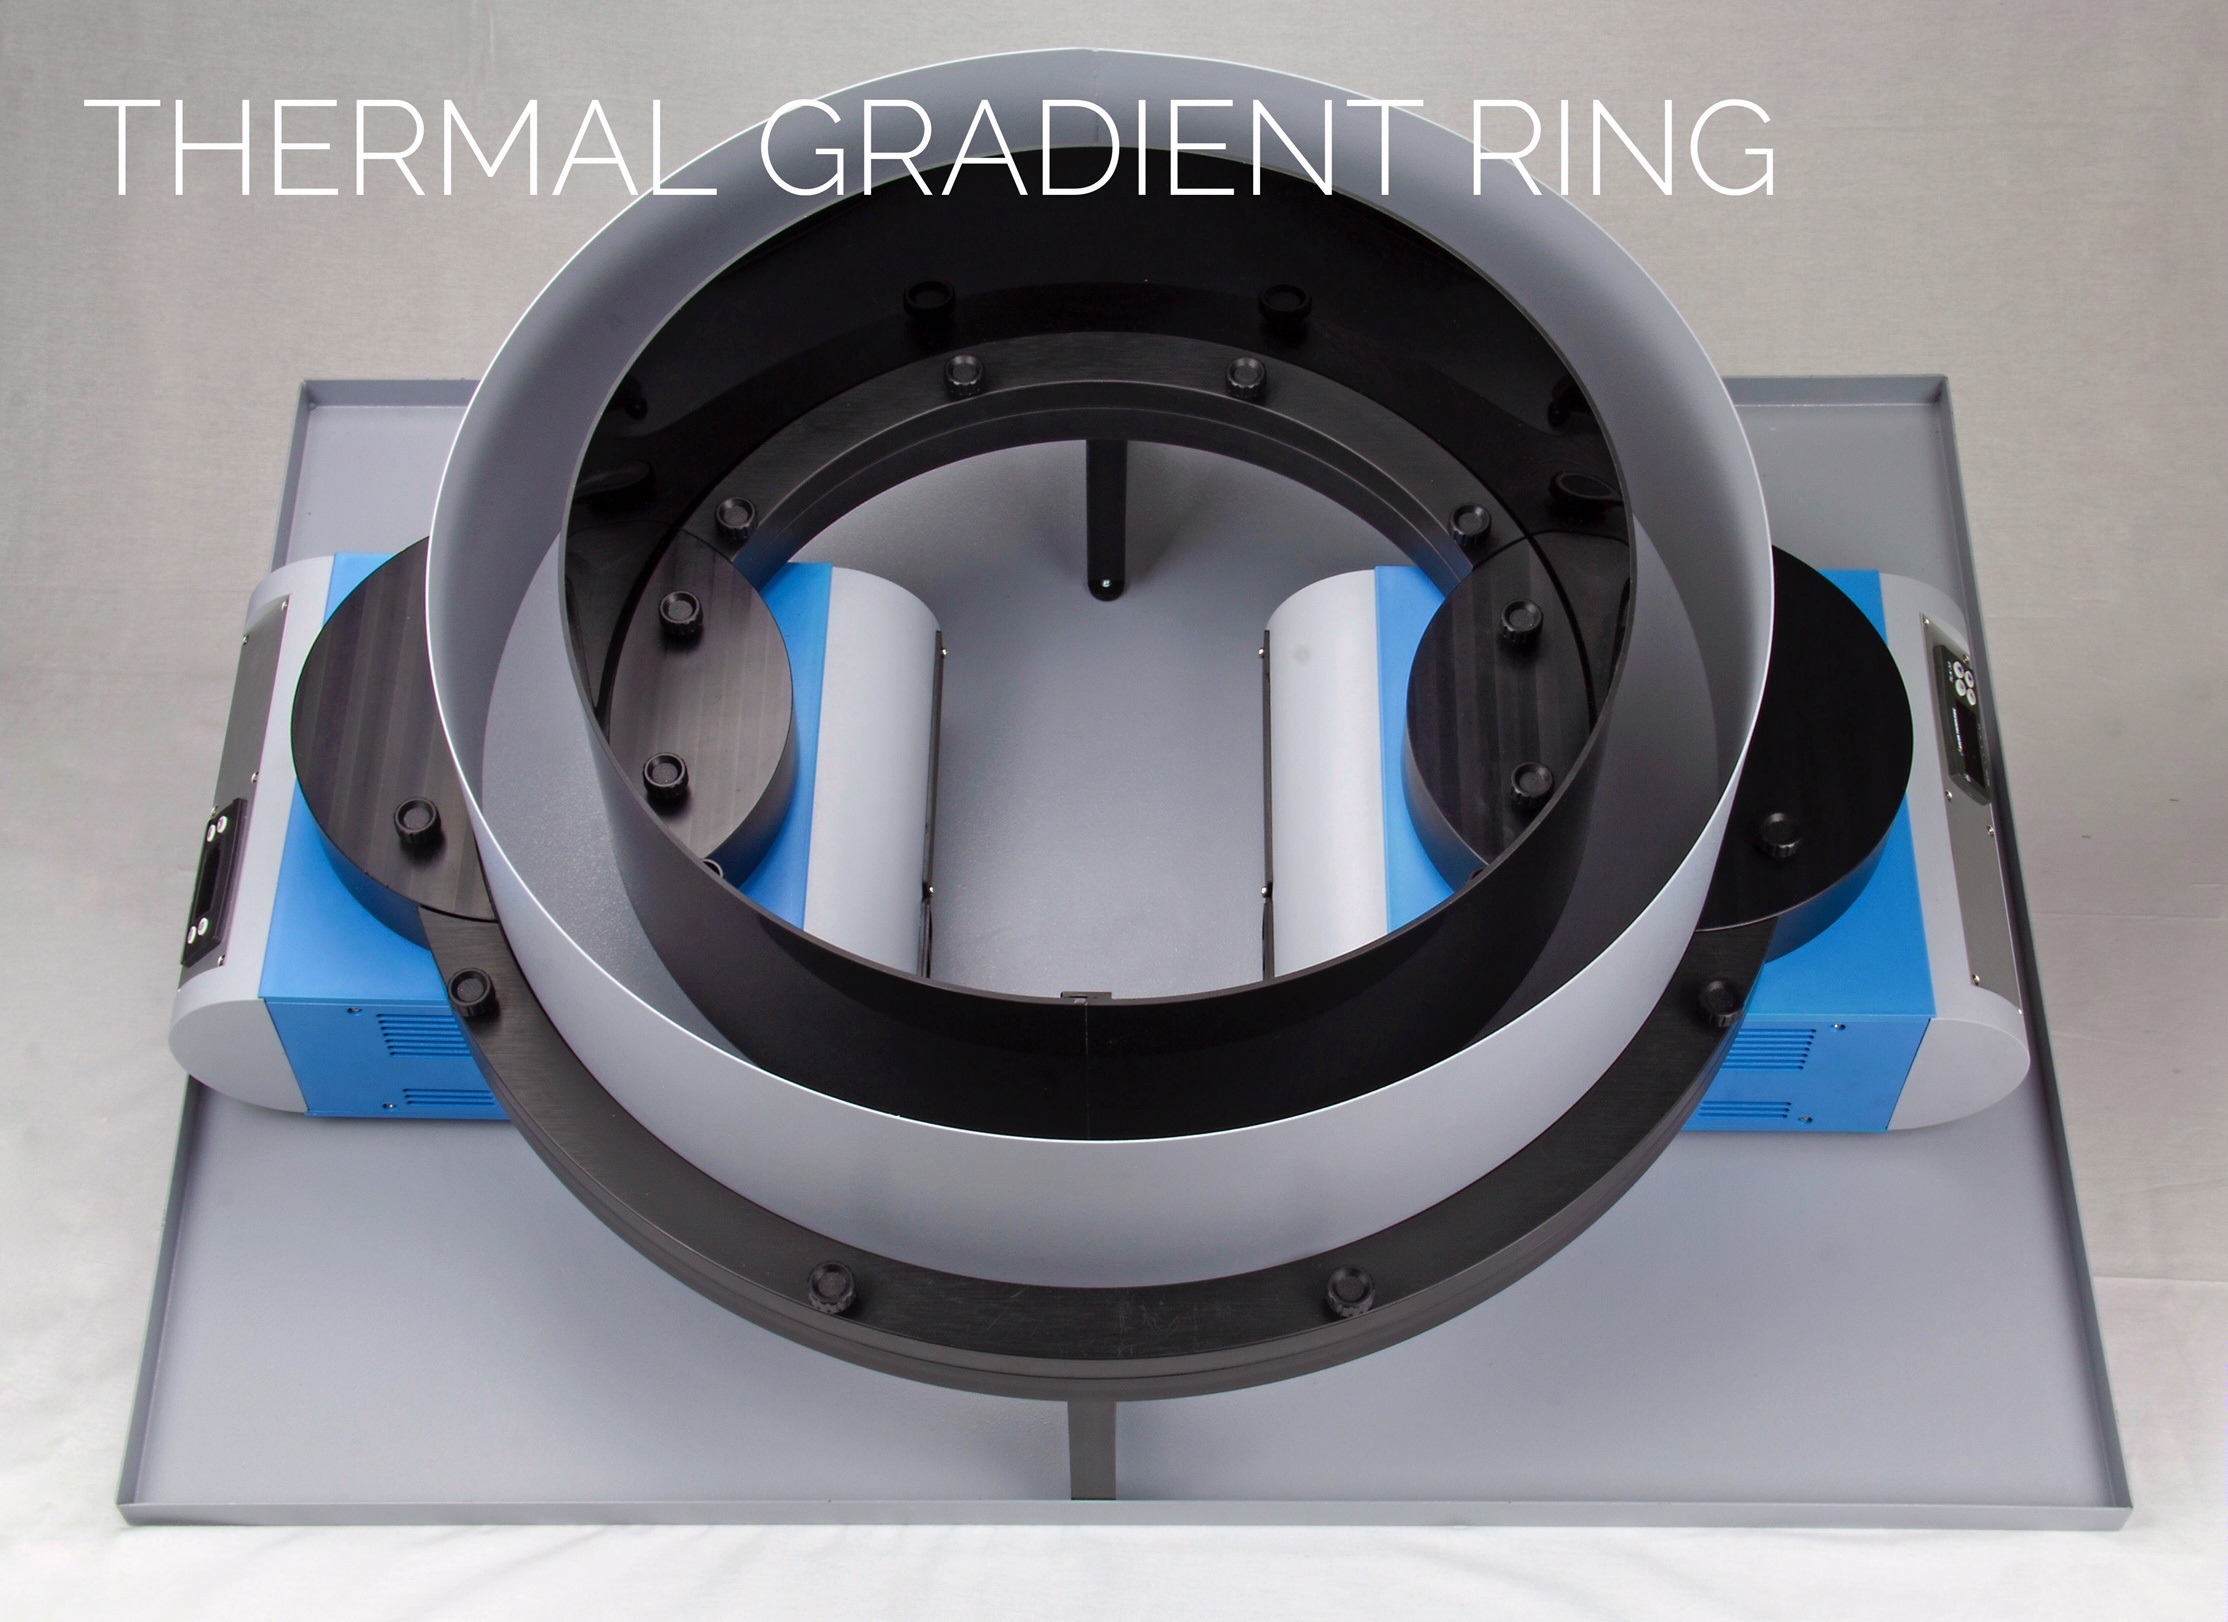 Thermal Gradient Ring (Zimmermann test)